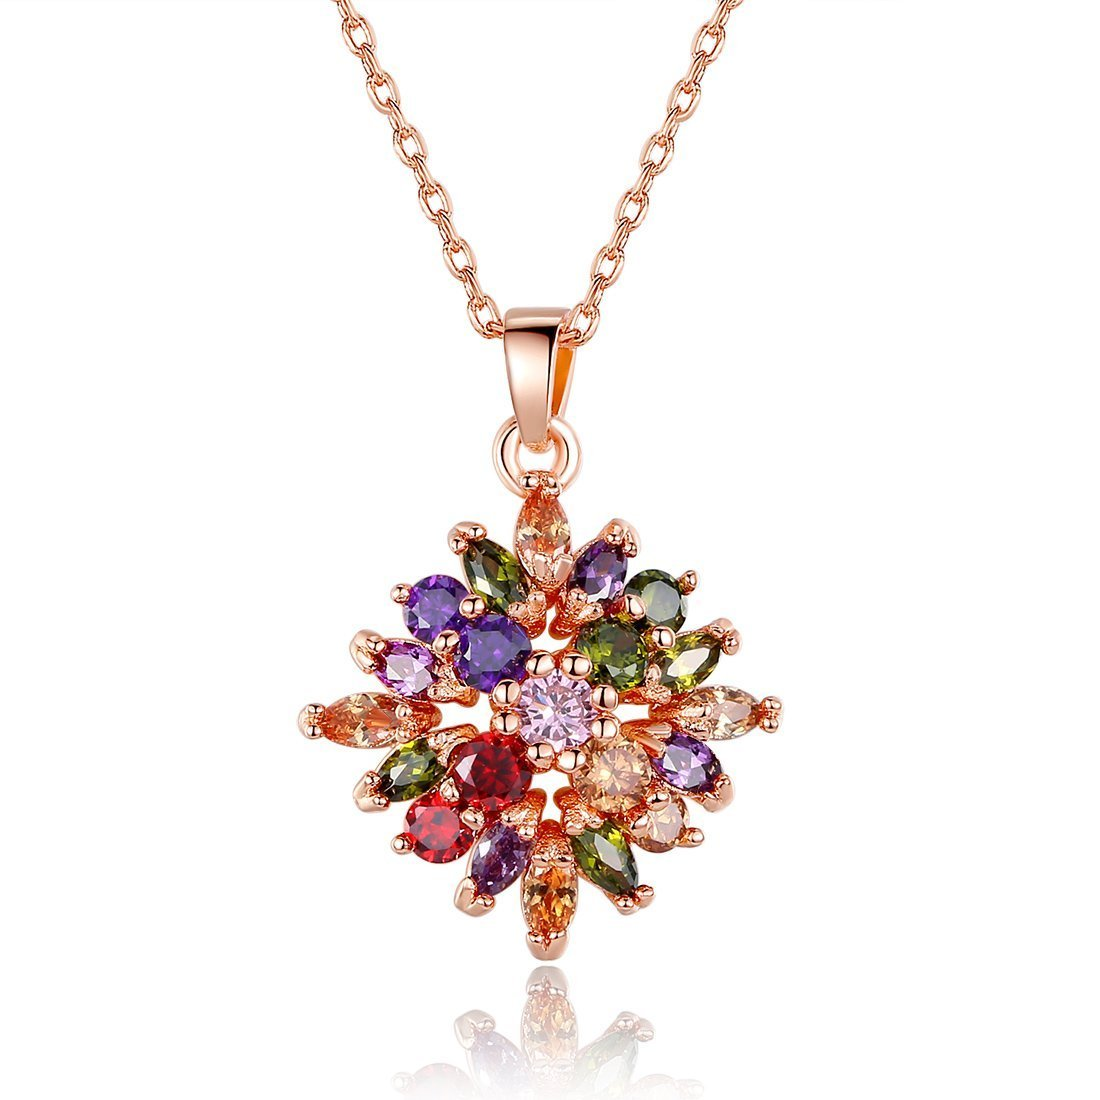 Alma 18K Champagne Gold Plated Colorful Gemstone Flower Shape Top Quality Fashion Pendant Necklace